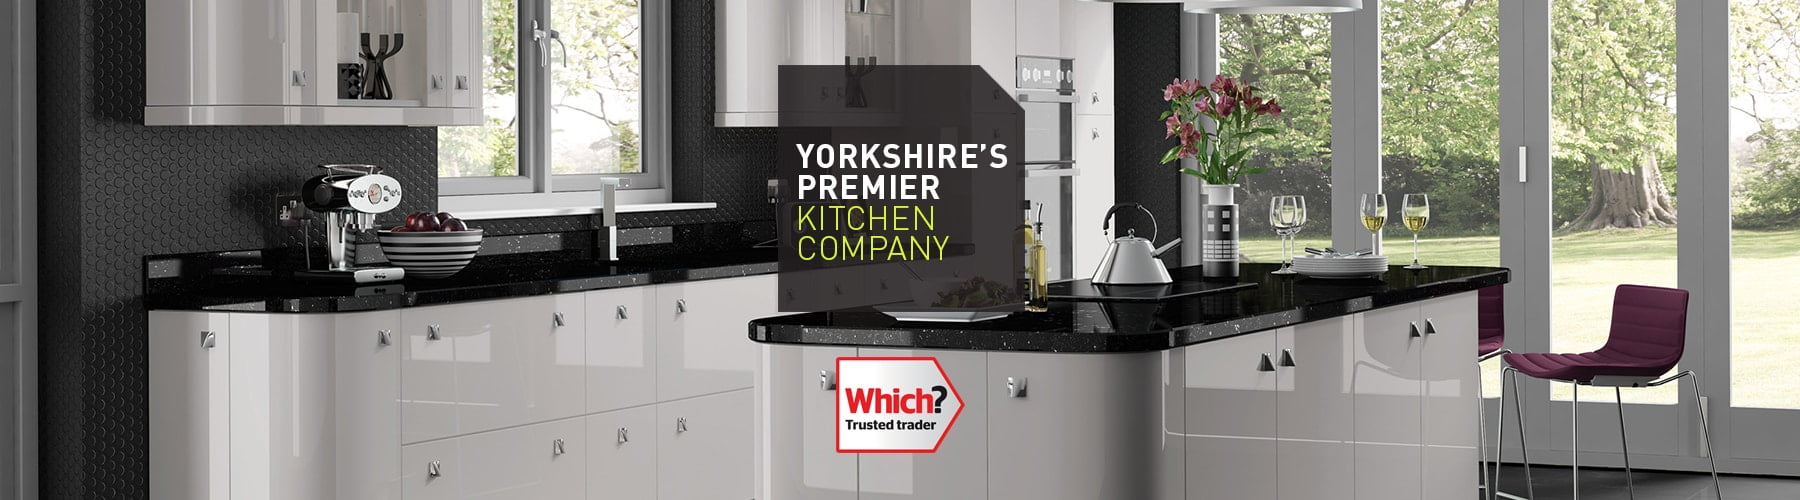 yorkshires premier kitchen company home banner